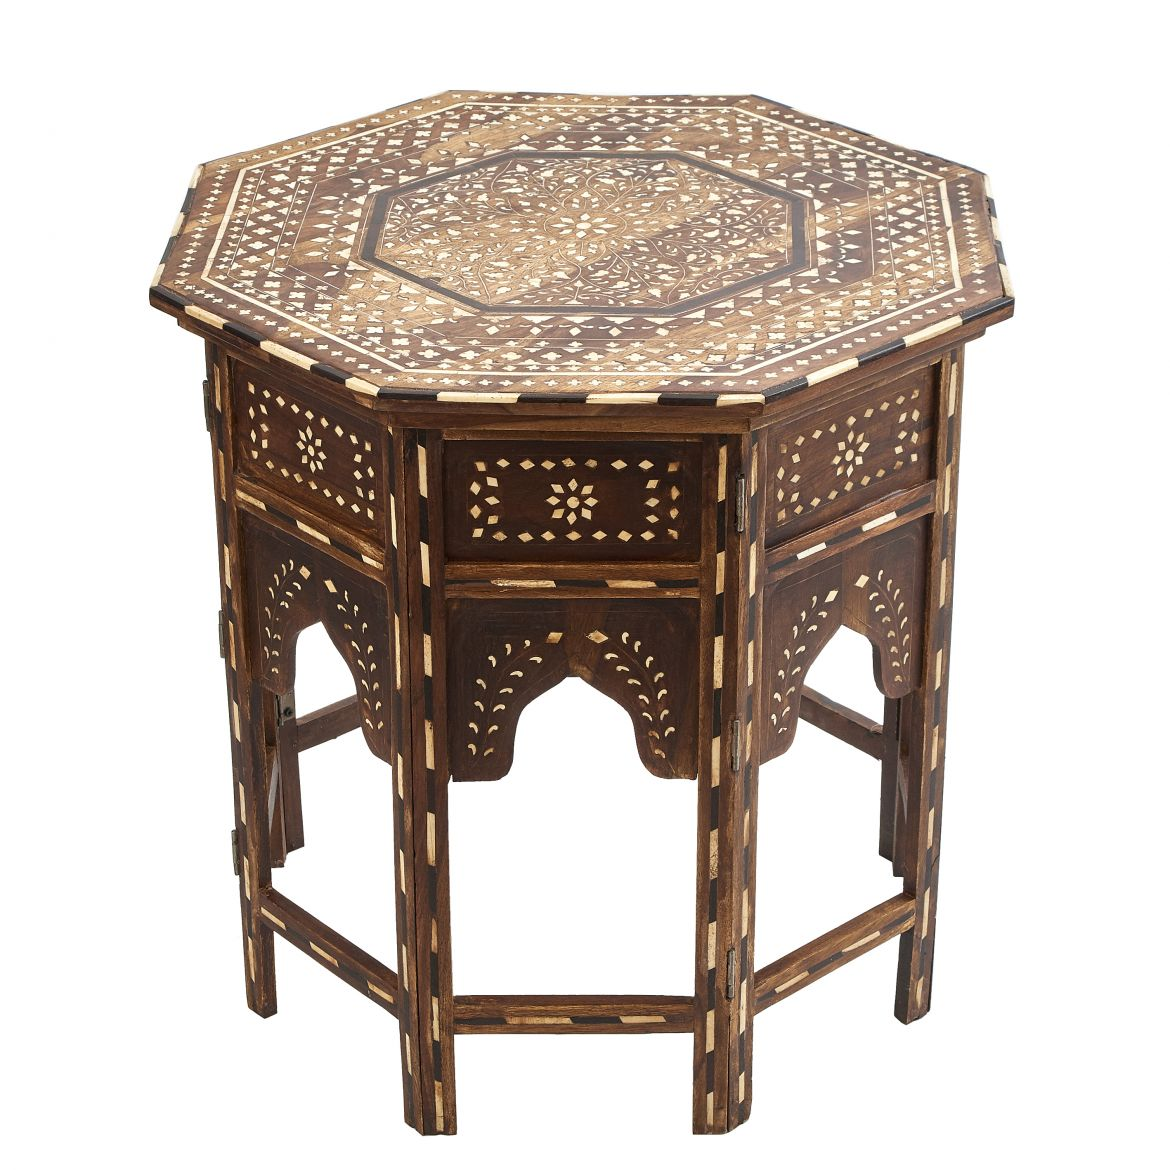 Contemporary Inlaid Table